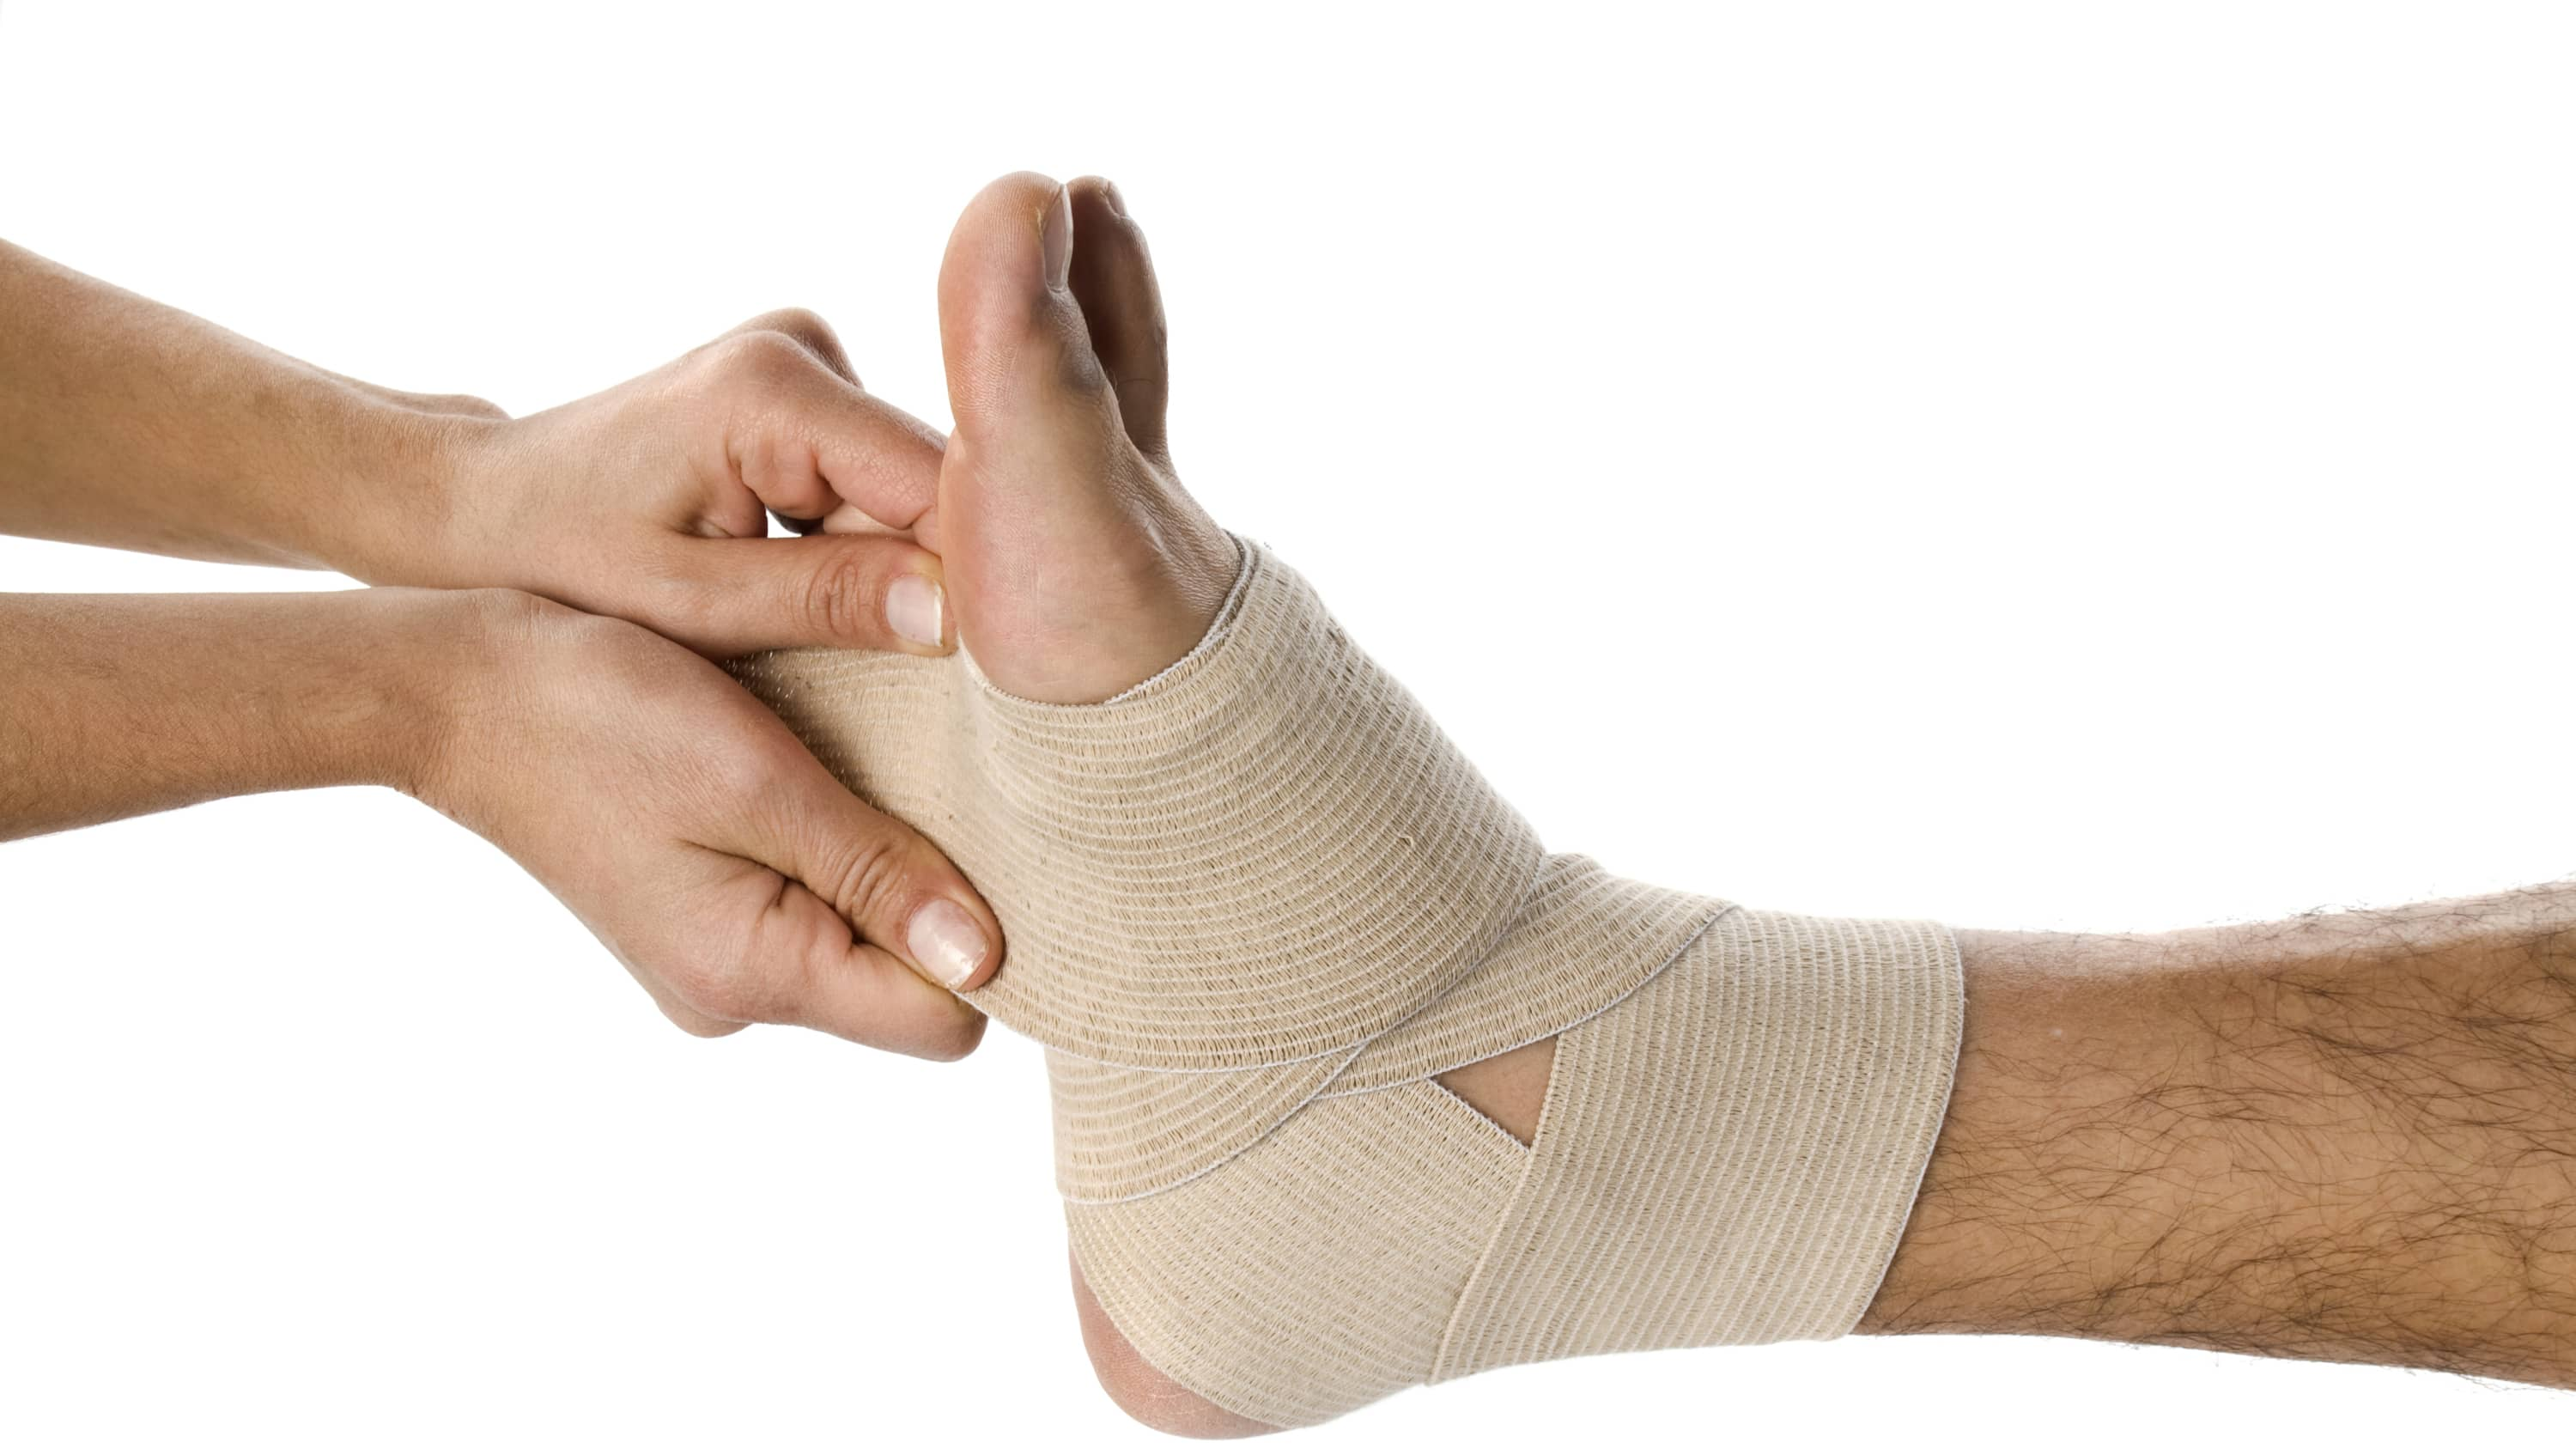 a foot wrapped in bandage, possibly from a stress fracture